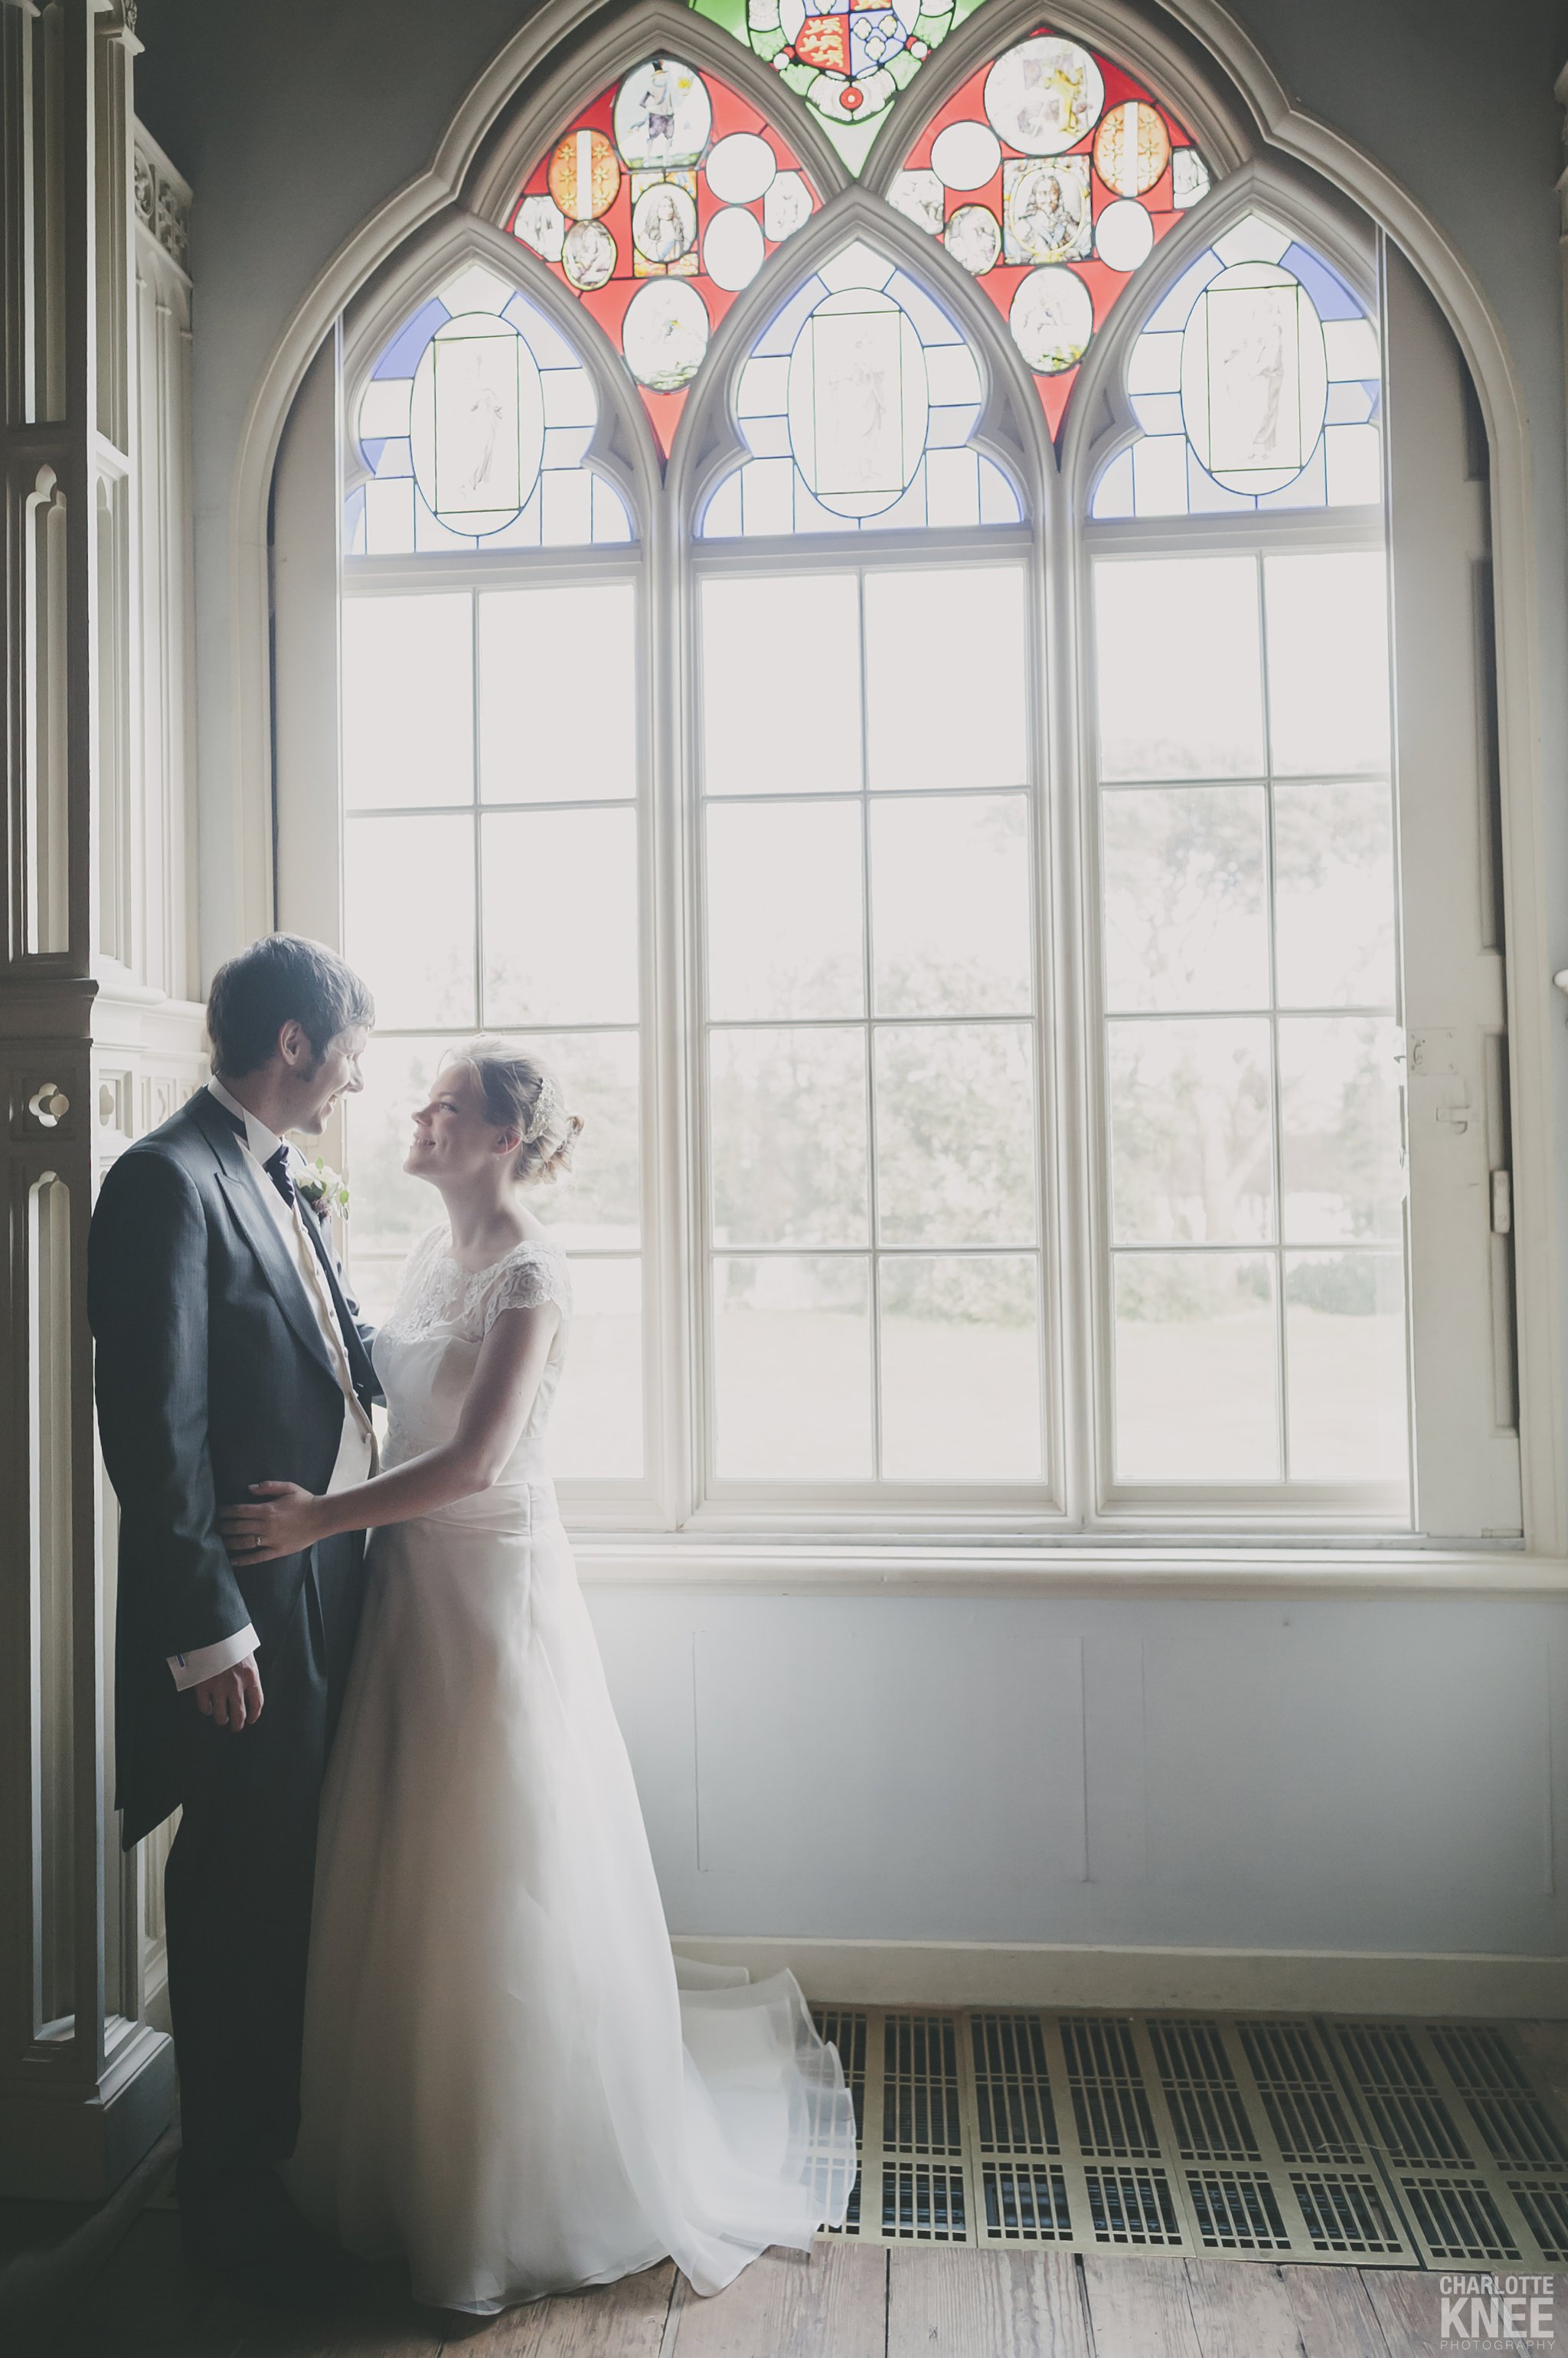 LONDON-WEDDING-PHOTOGRAPHY-STRAWBERRY-HILL-HOUSE-Charlotte-Knee-Photography_0063.jpg